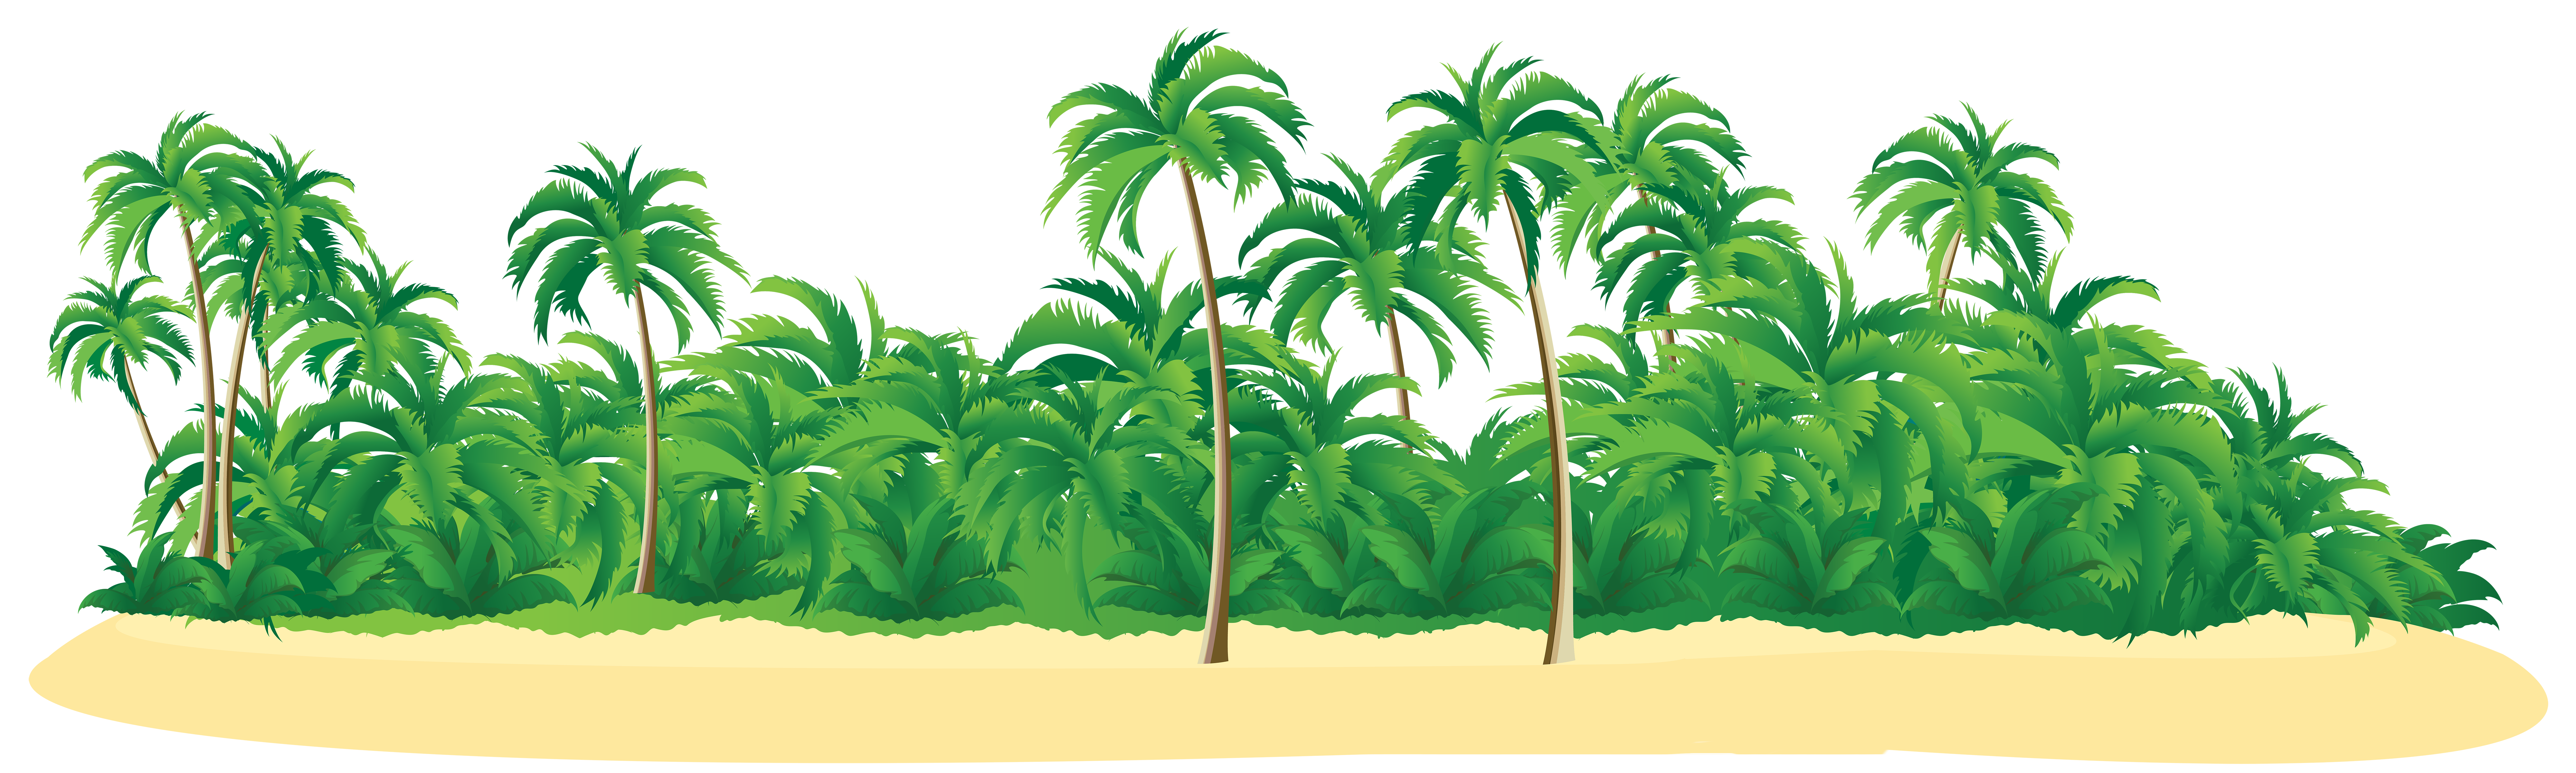 Summer Tropical Island with Palm Trees PNG Clip Art Image.